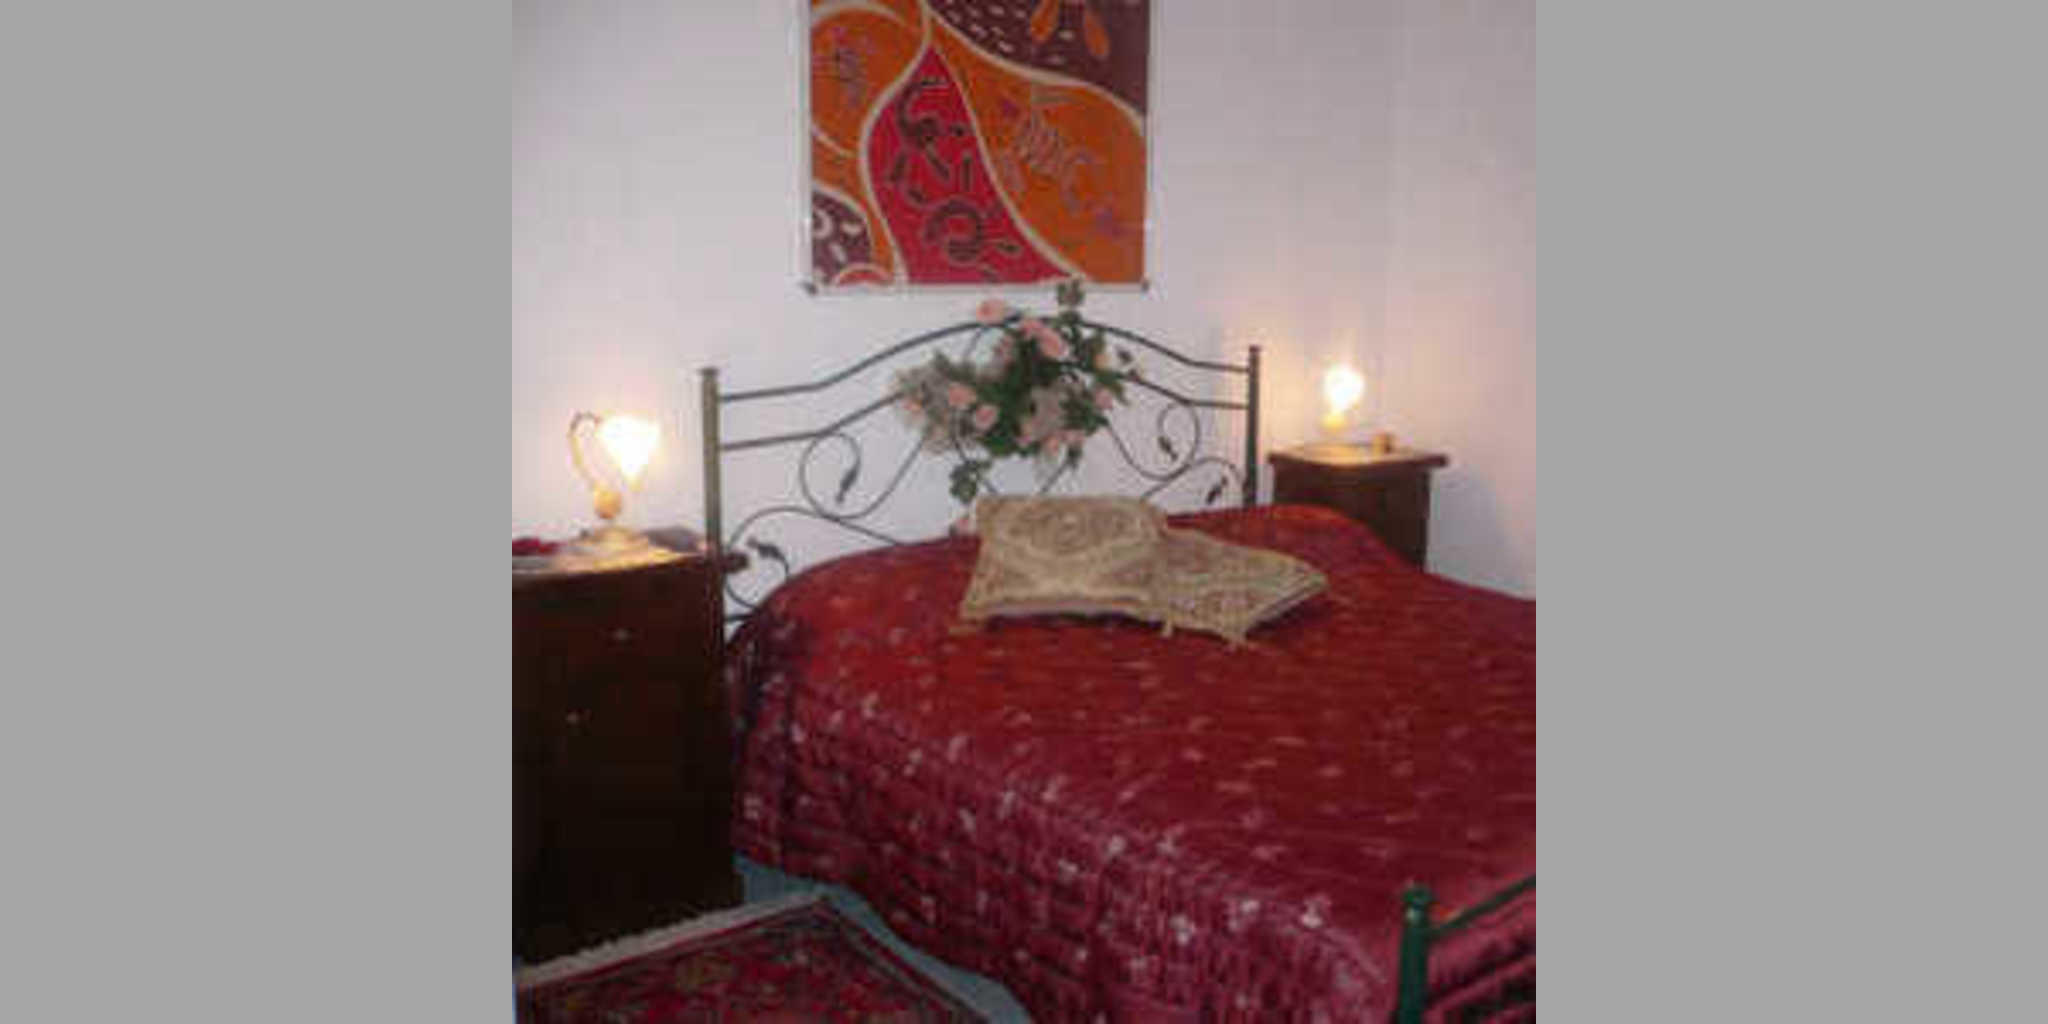 Bed & Breakfast Castellana Grotte - Angiuli